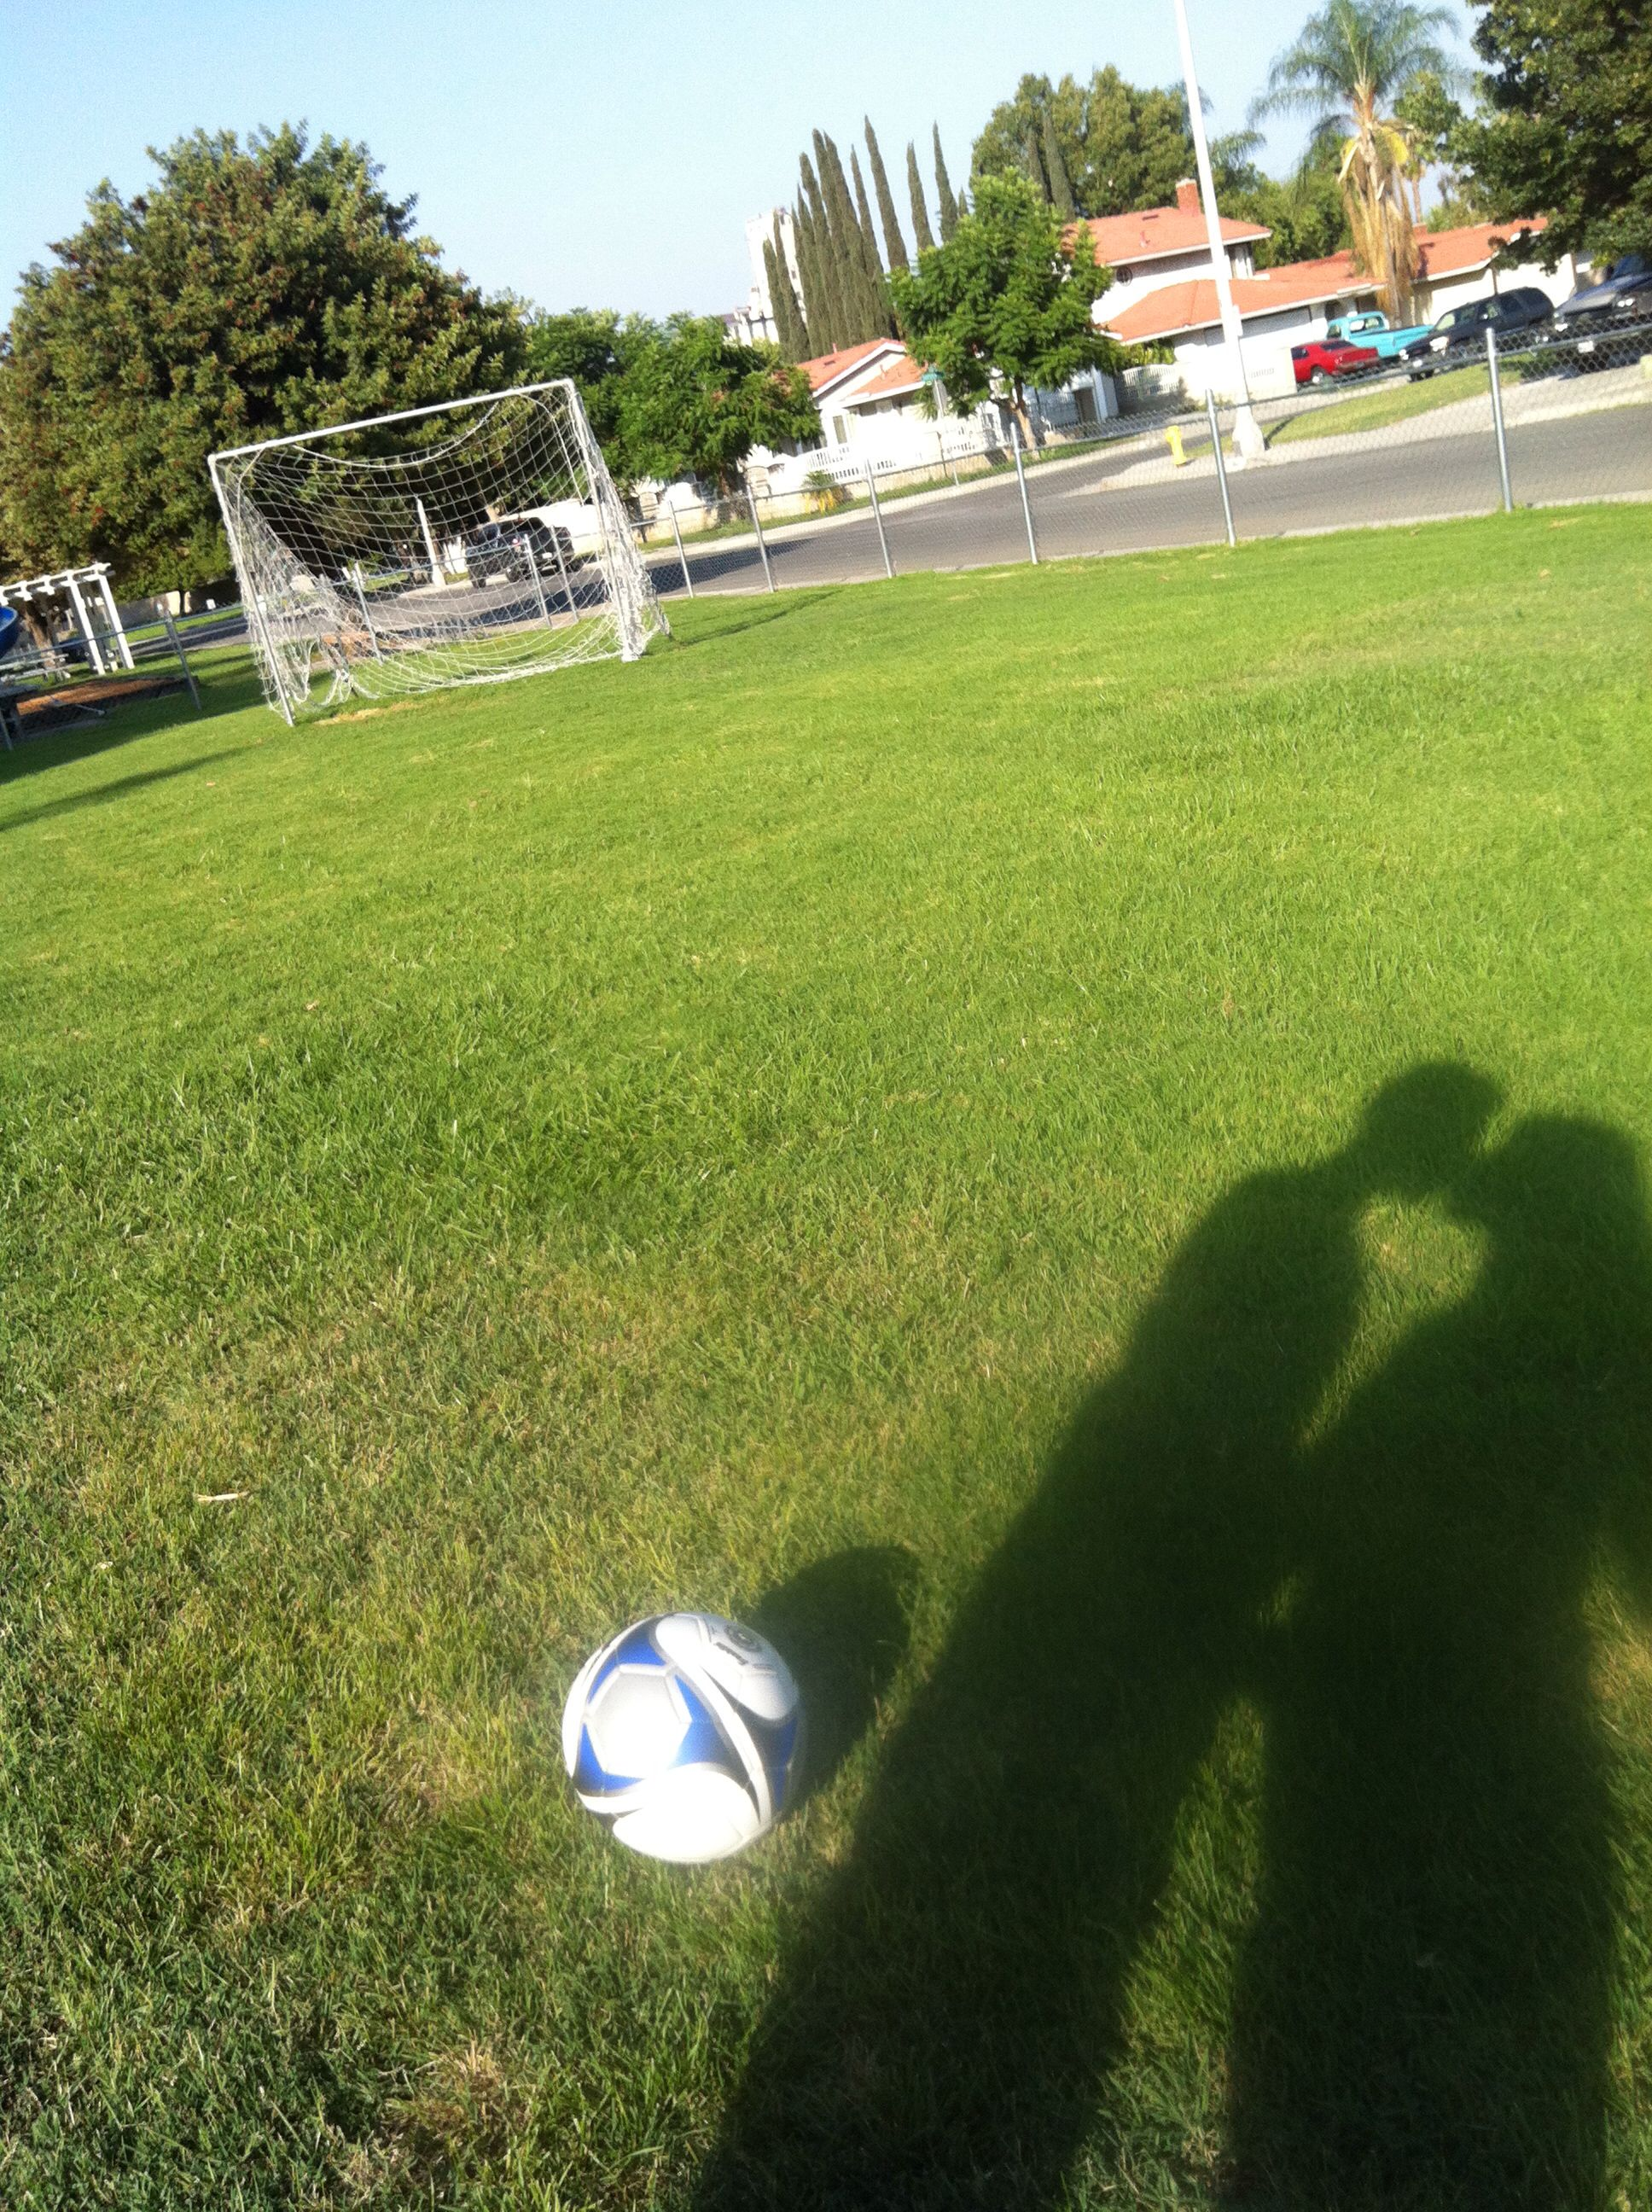 e04d27788 Soccer. Relationship photos. Relationship goals. Couples. Shadow. Love.  Photography. Creative. Thoughtful. Cute. In love. Playground.